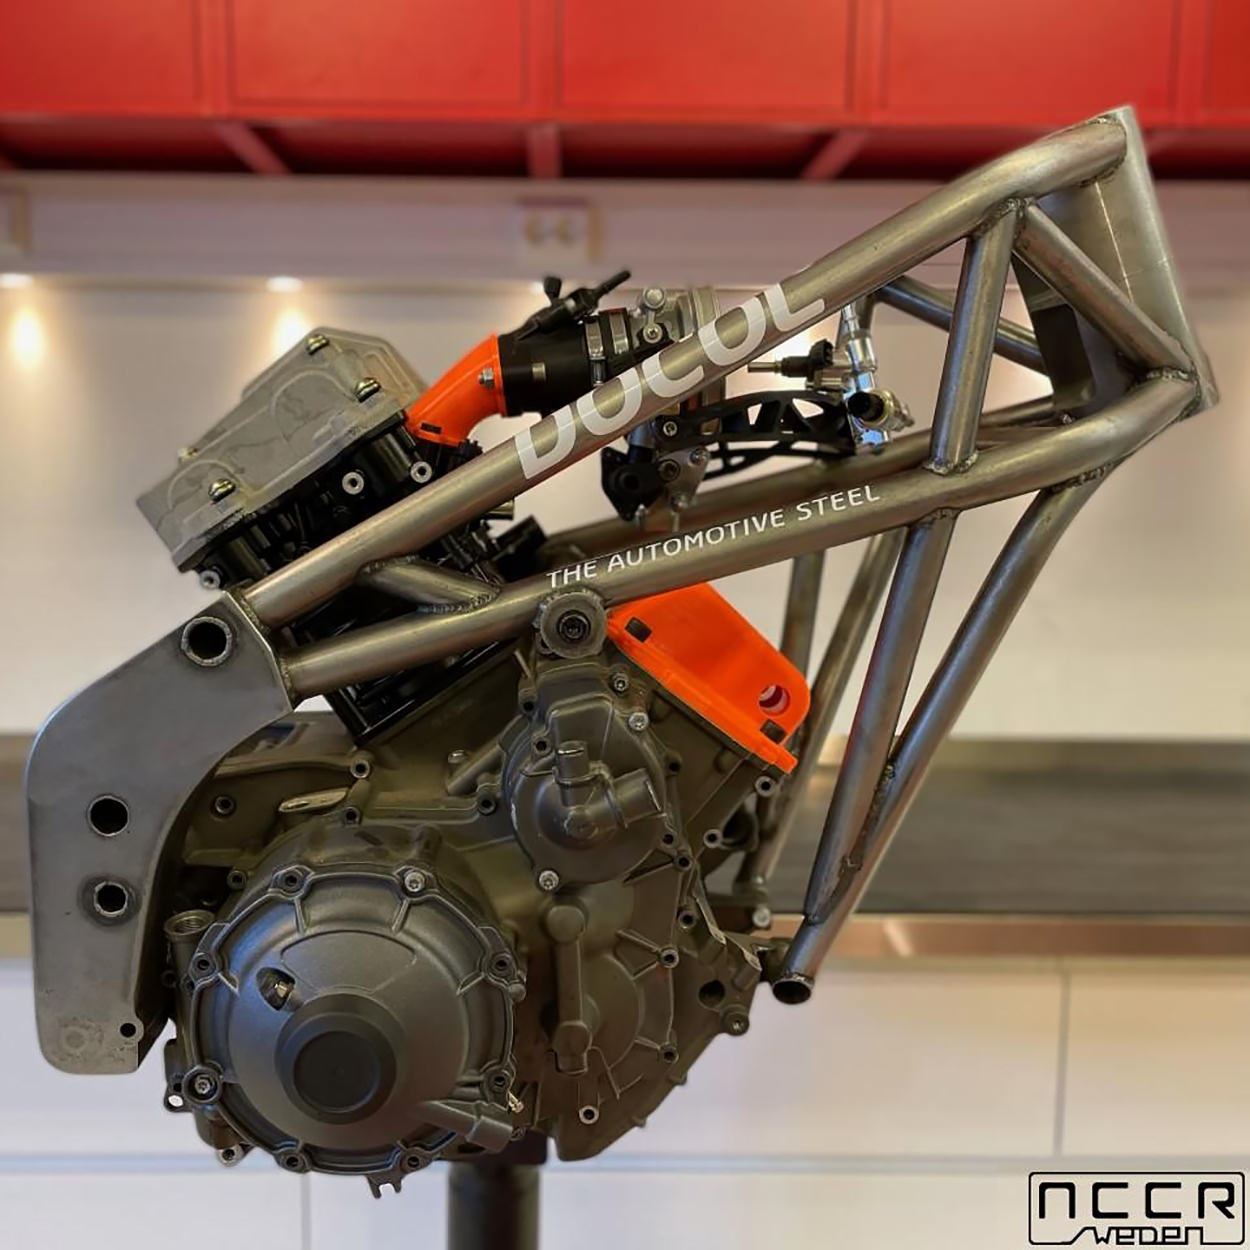 Buell super single engine by NCCR